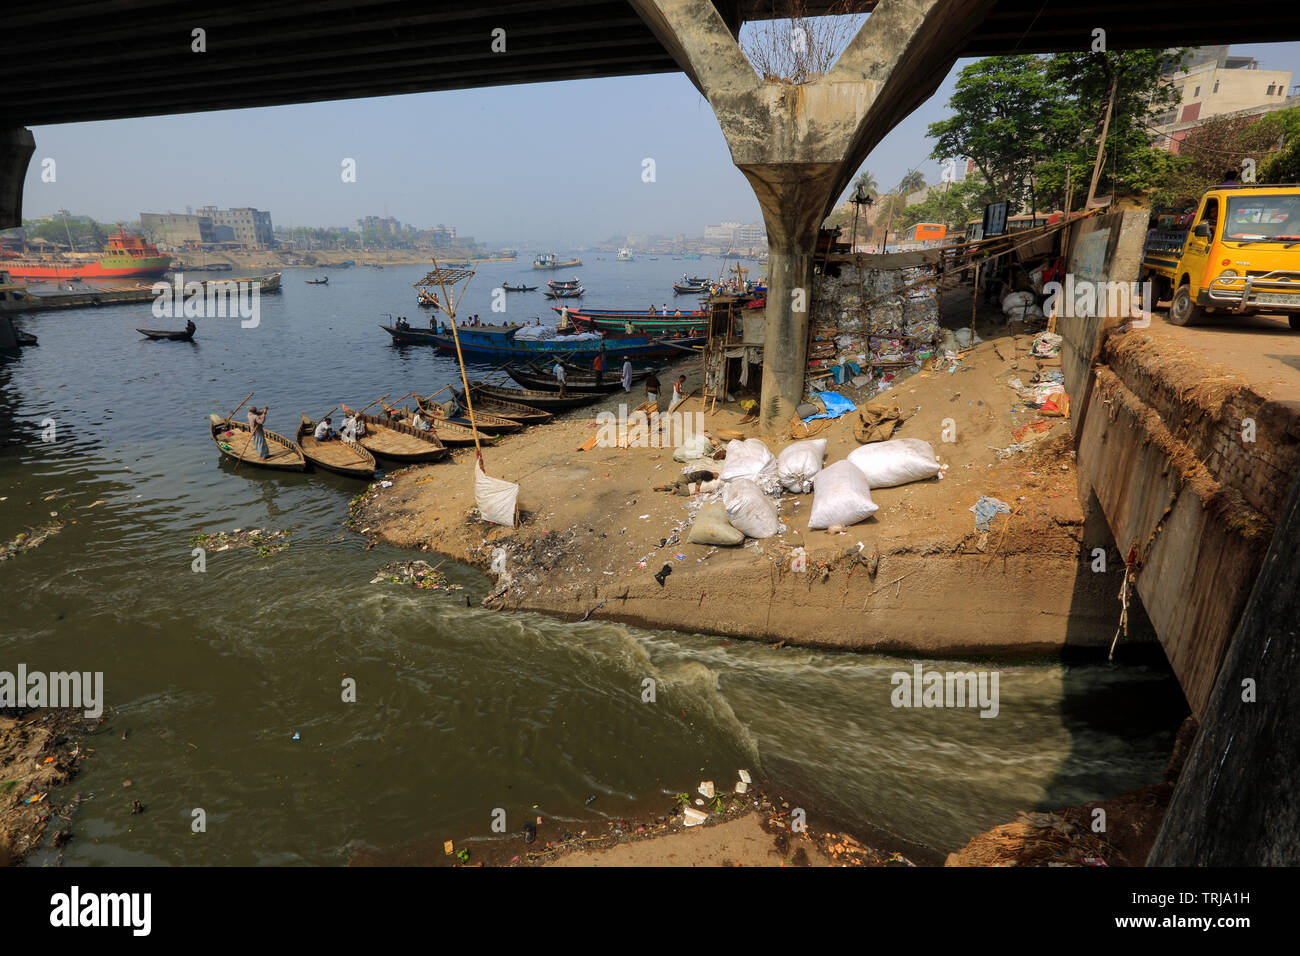 Directly dumping of industrial and human waste and garbage in the Buriganga River in Dhaka, Bangladesh - Stock Image